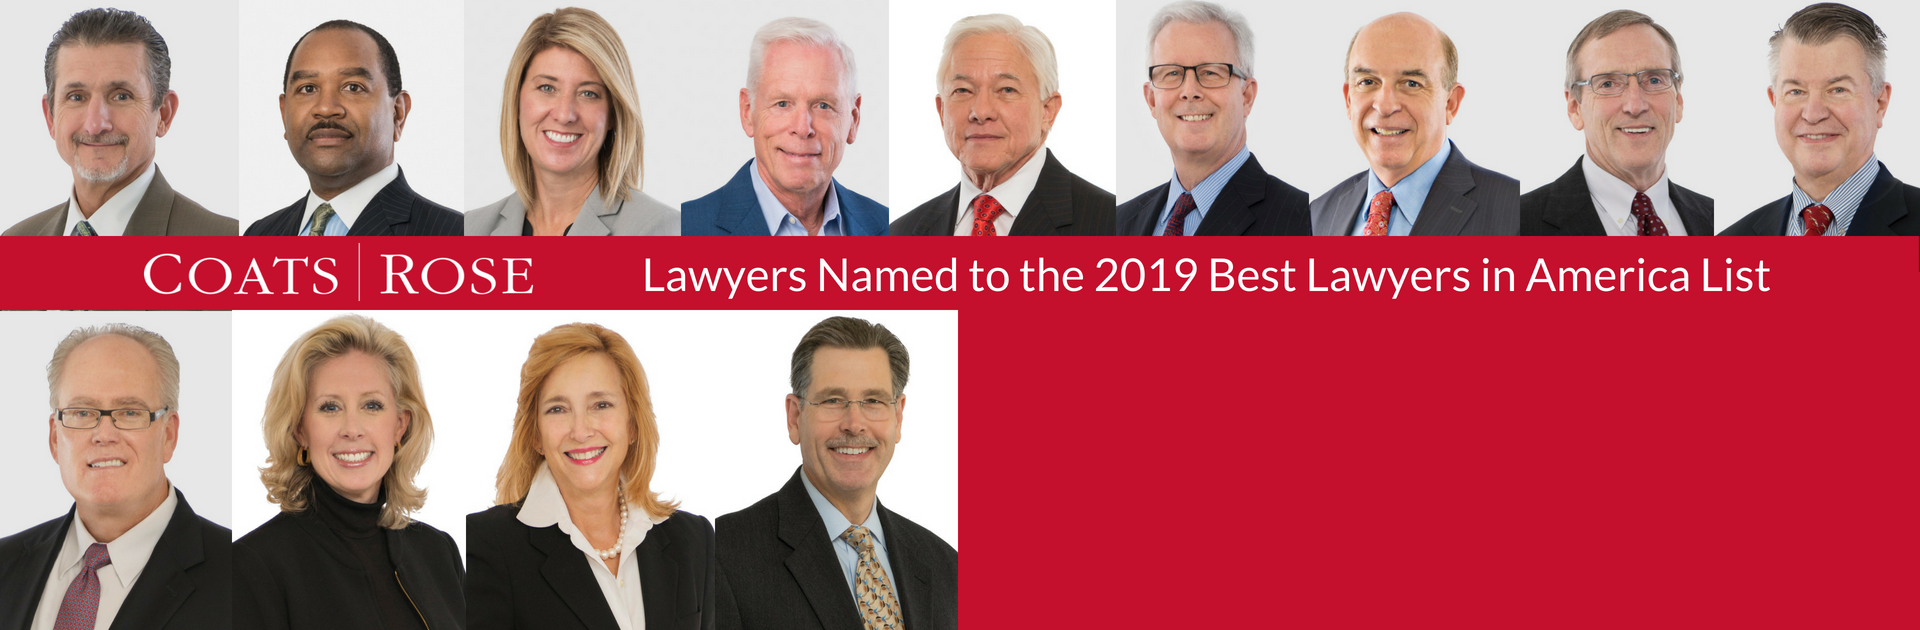 13 Coats Rose Attorneys Named to 2019 Best Lawyers in America© List Published by Woodward White Inc.